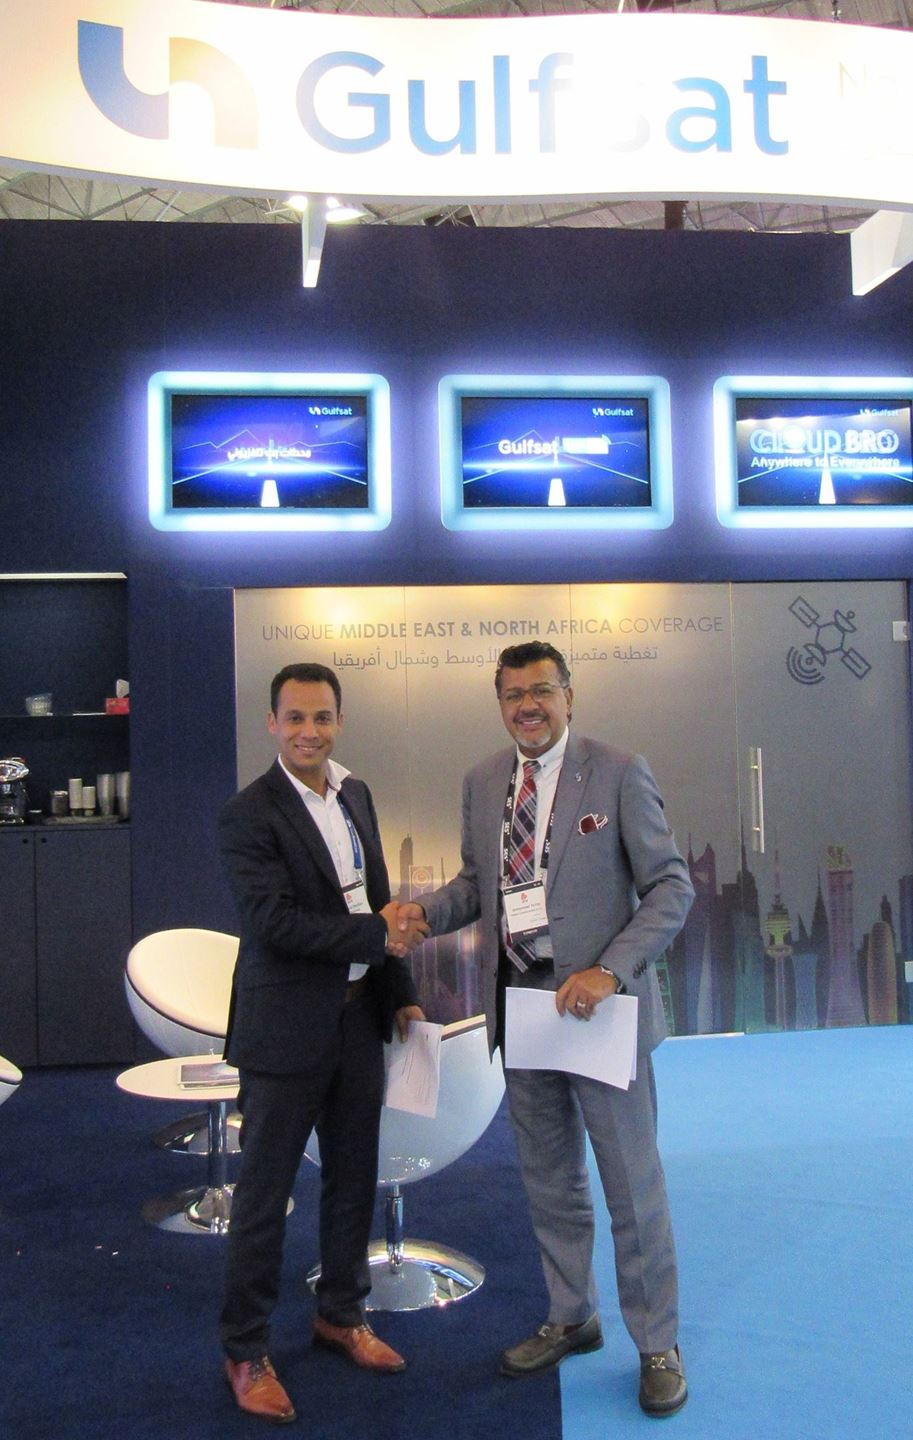 Gulfsat Join Forces with Easy Broadcast to Provide Multichannel Digital Experience on for TV Channels, OTT Players and Enterprises